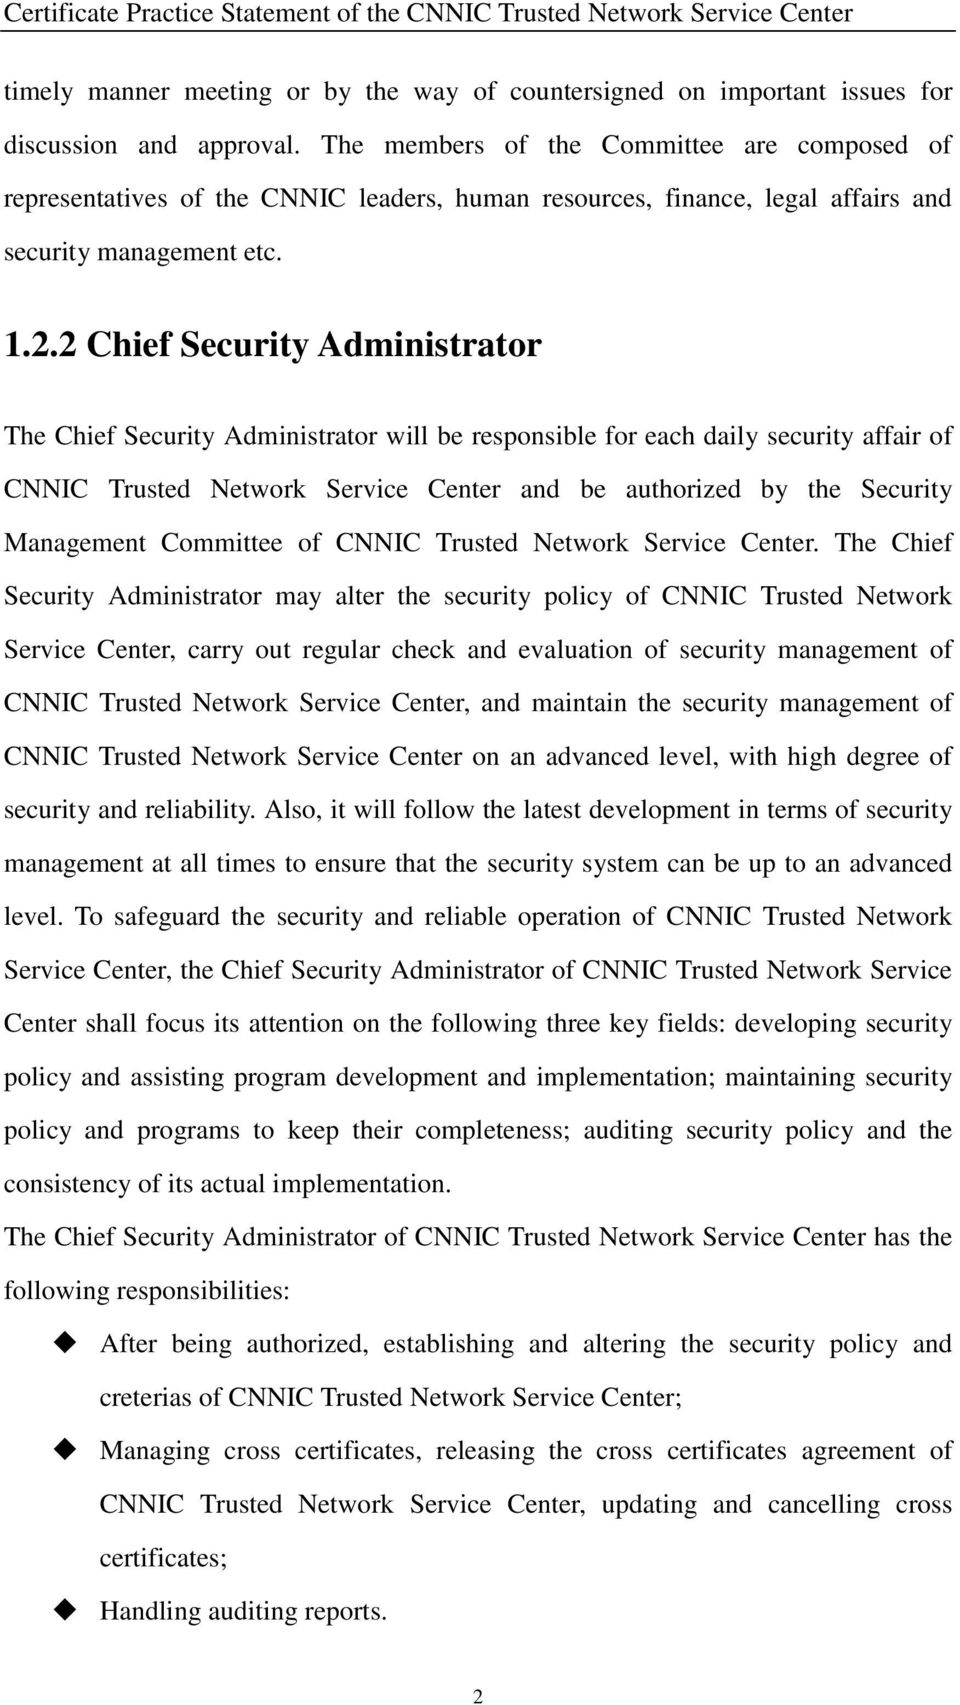 2 Chief Security Administrator The Chief Security Administrator will be responsible for each daily security affair of CNNIC Trusted Network Service Center and be authorized by the Security Management